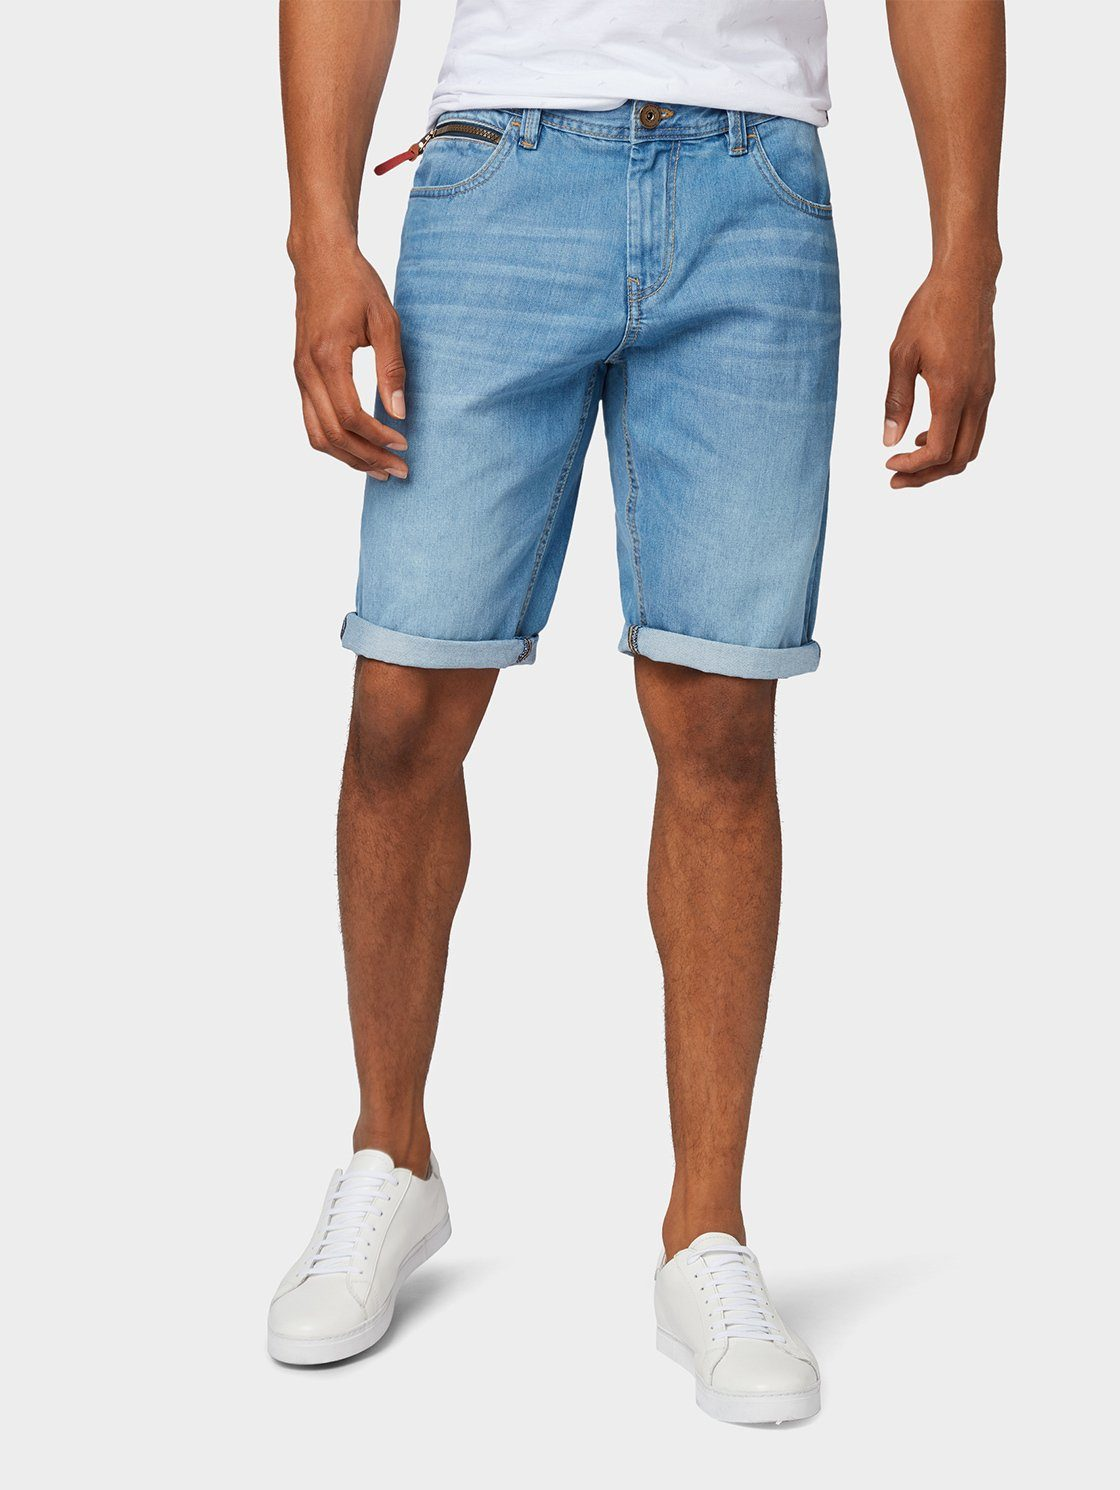 Herren TOM TAILOR Jeansbermudas »Josh Regular Slim Denim Shorts« blau | 04061945393615